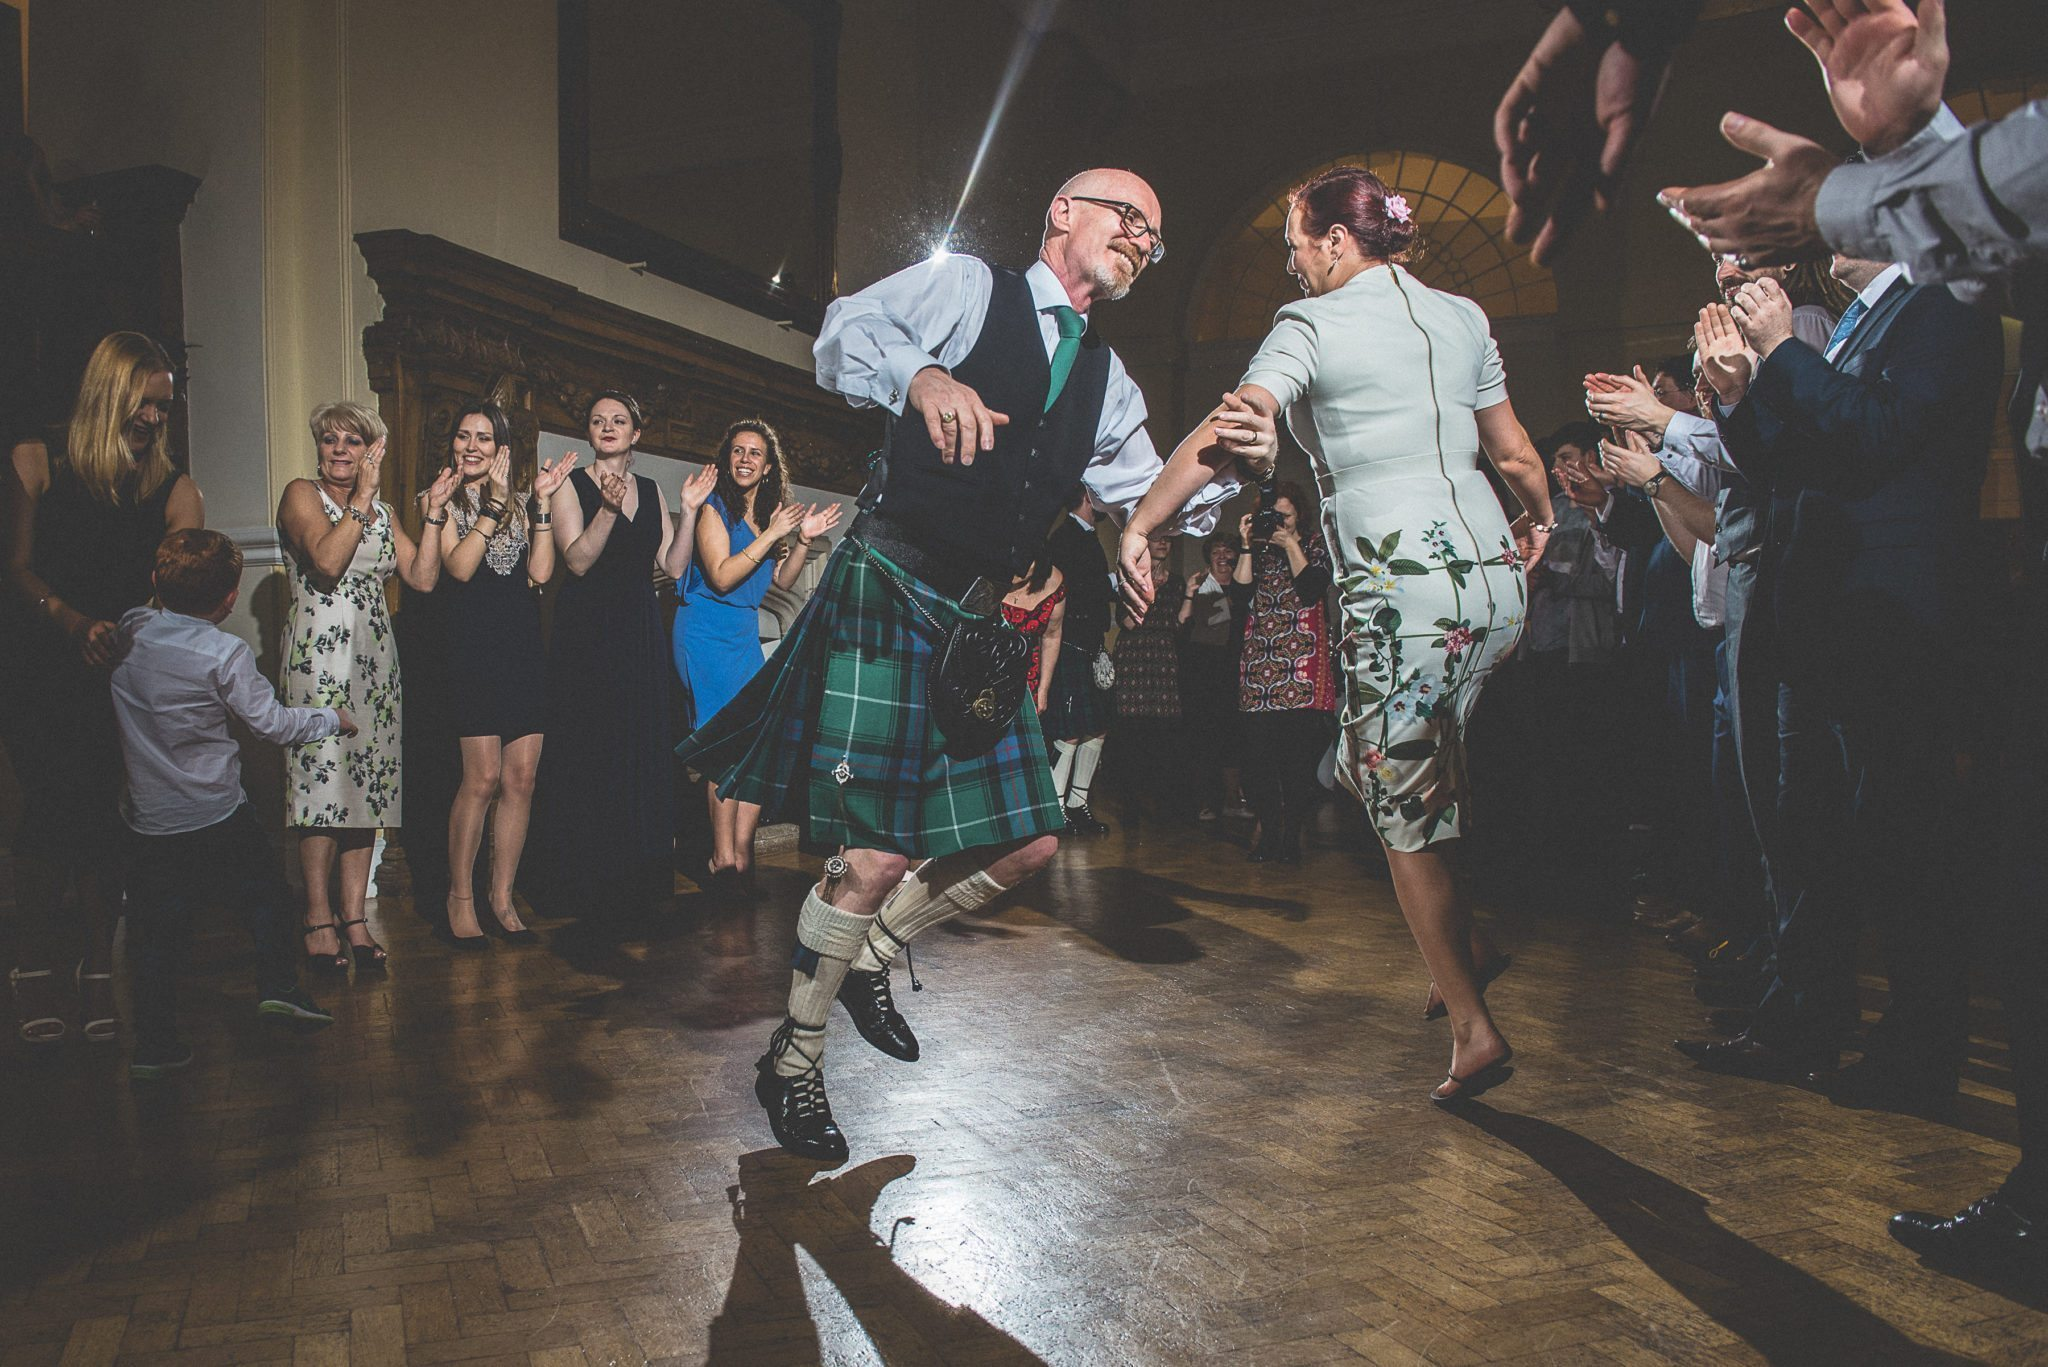 The dancefloor fills up and people spin round as the ceilidh kicks off